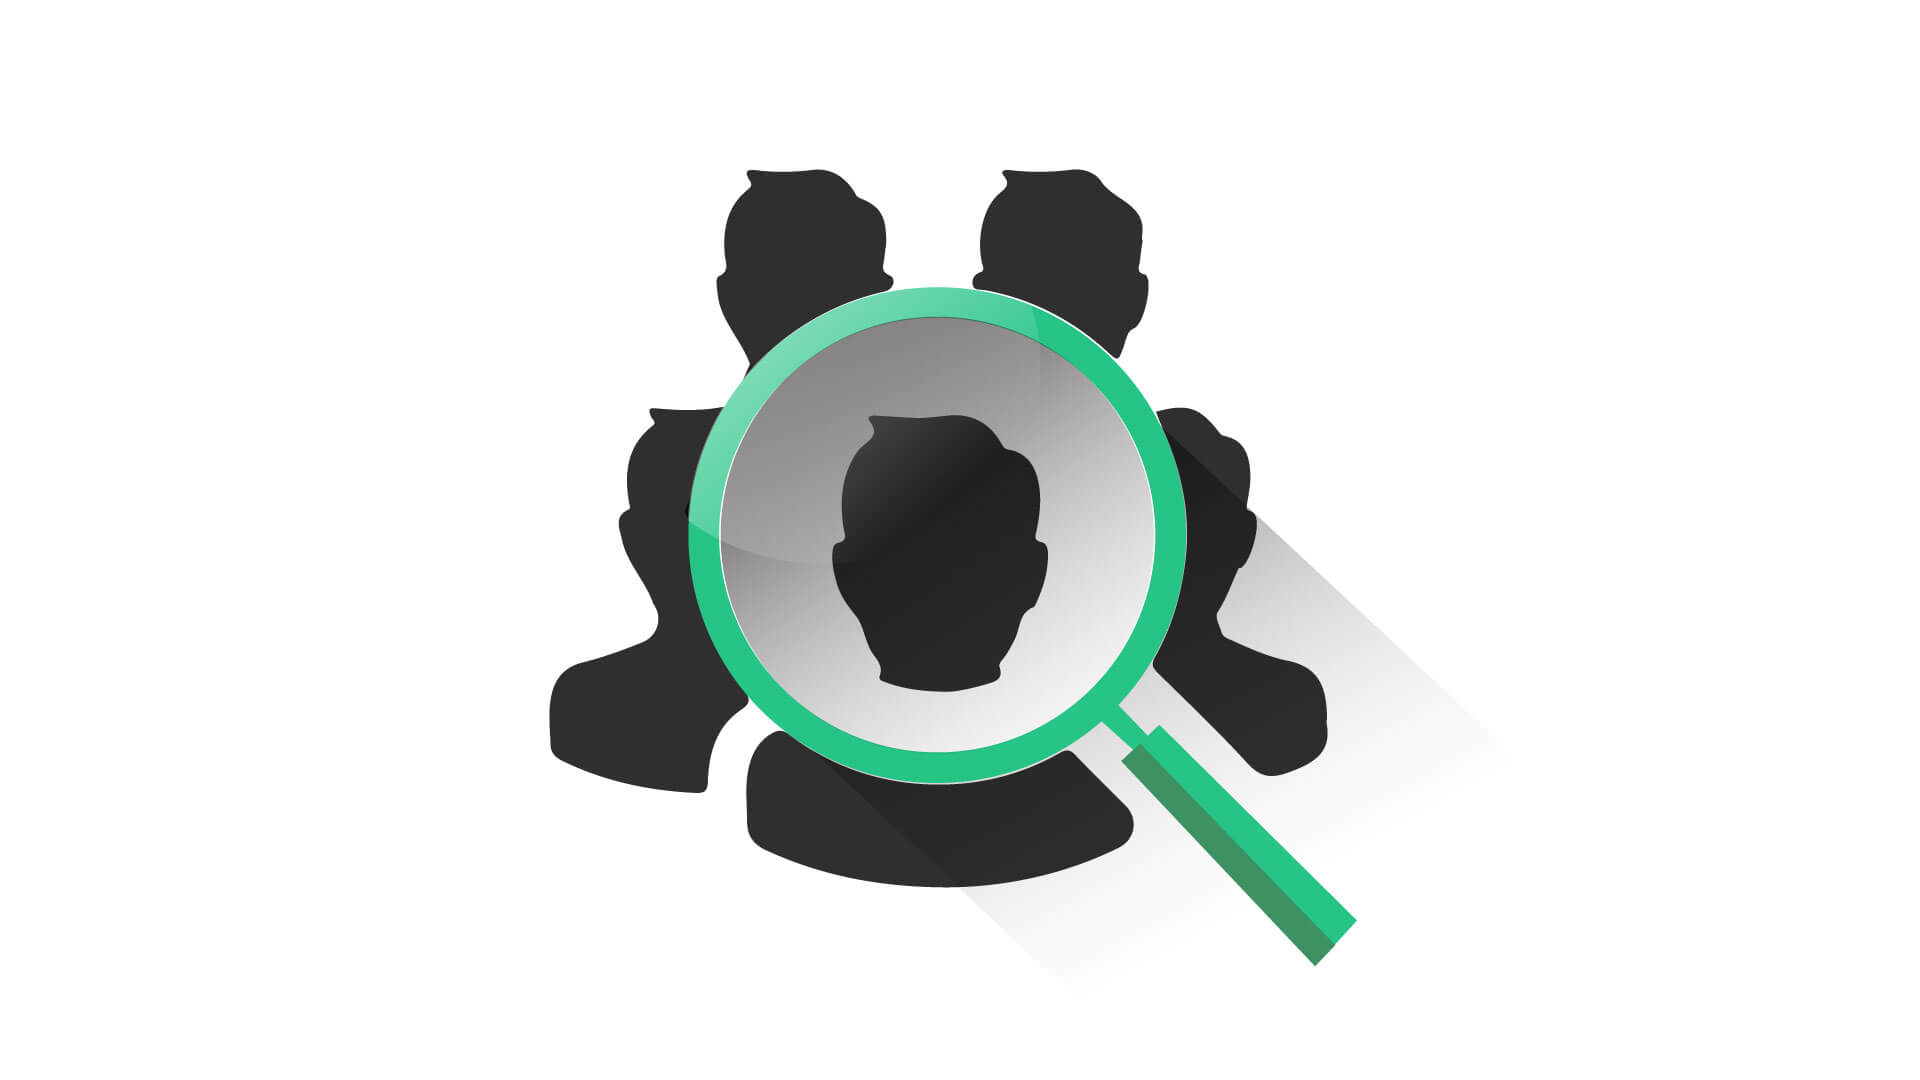 finding-users-clients-magnifying-glass-illustration